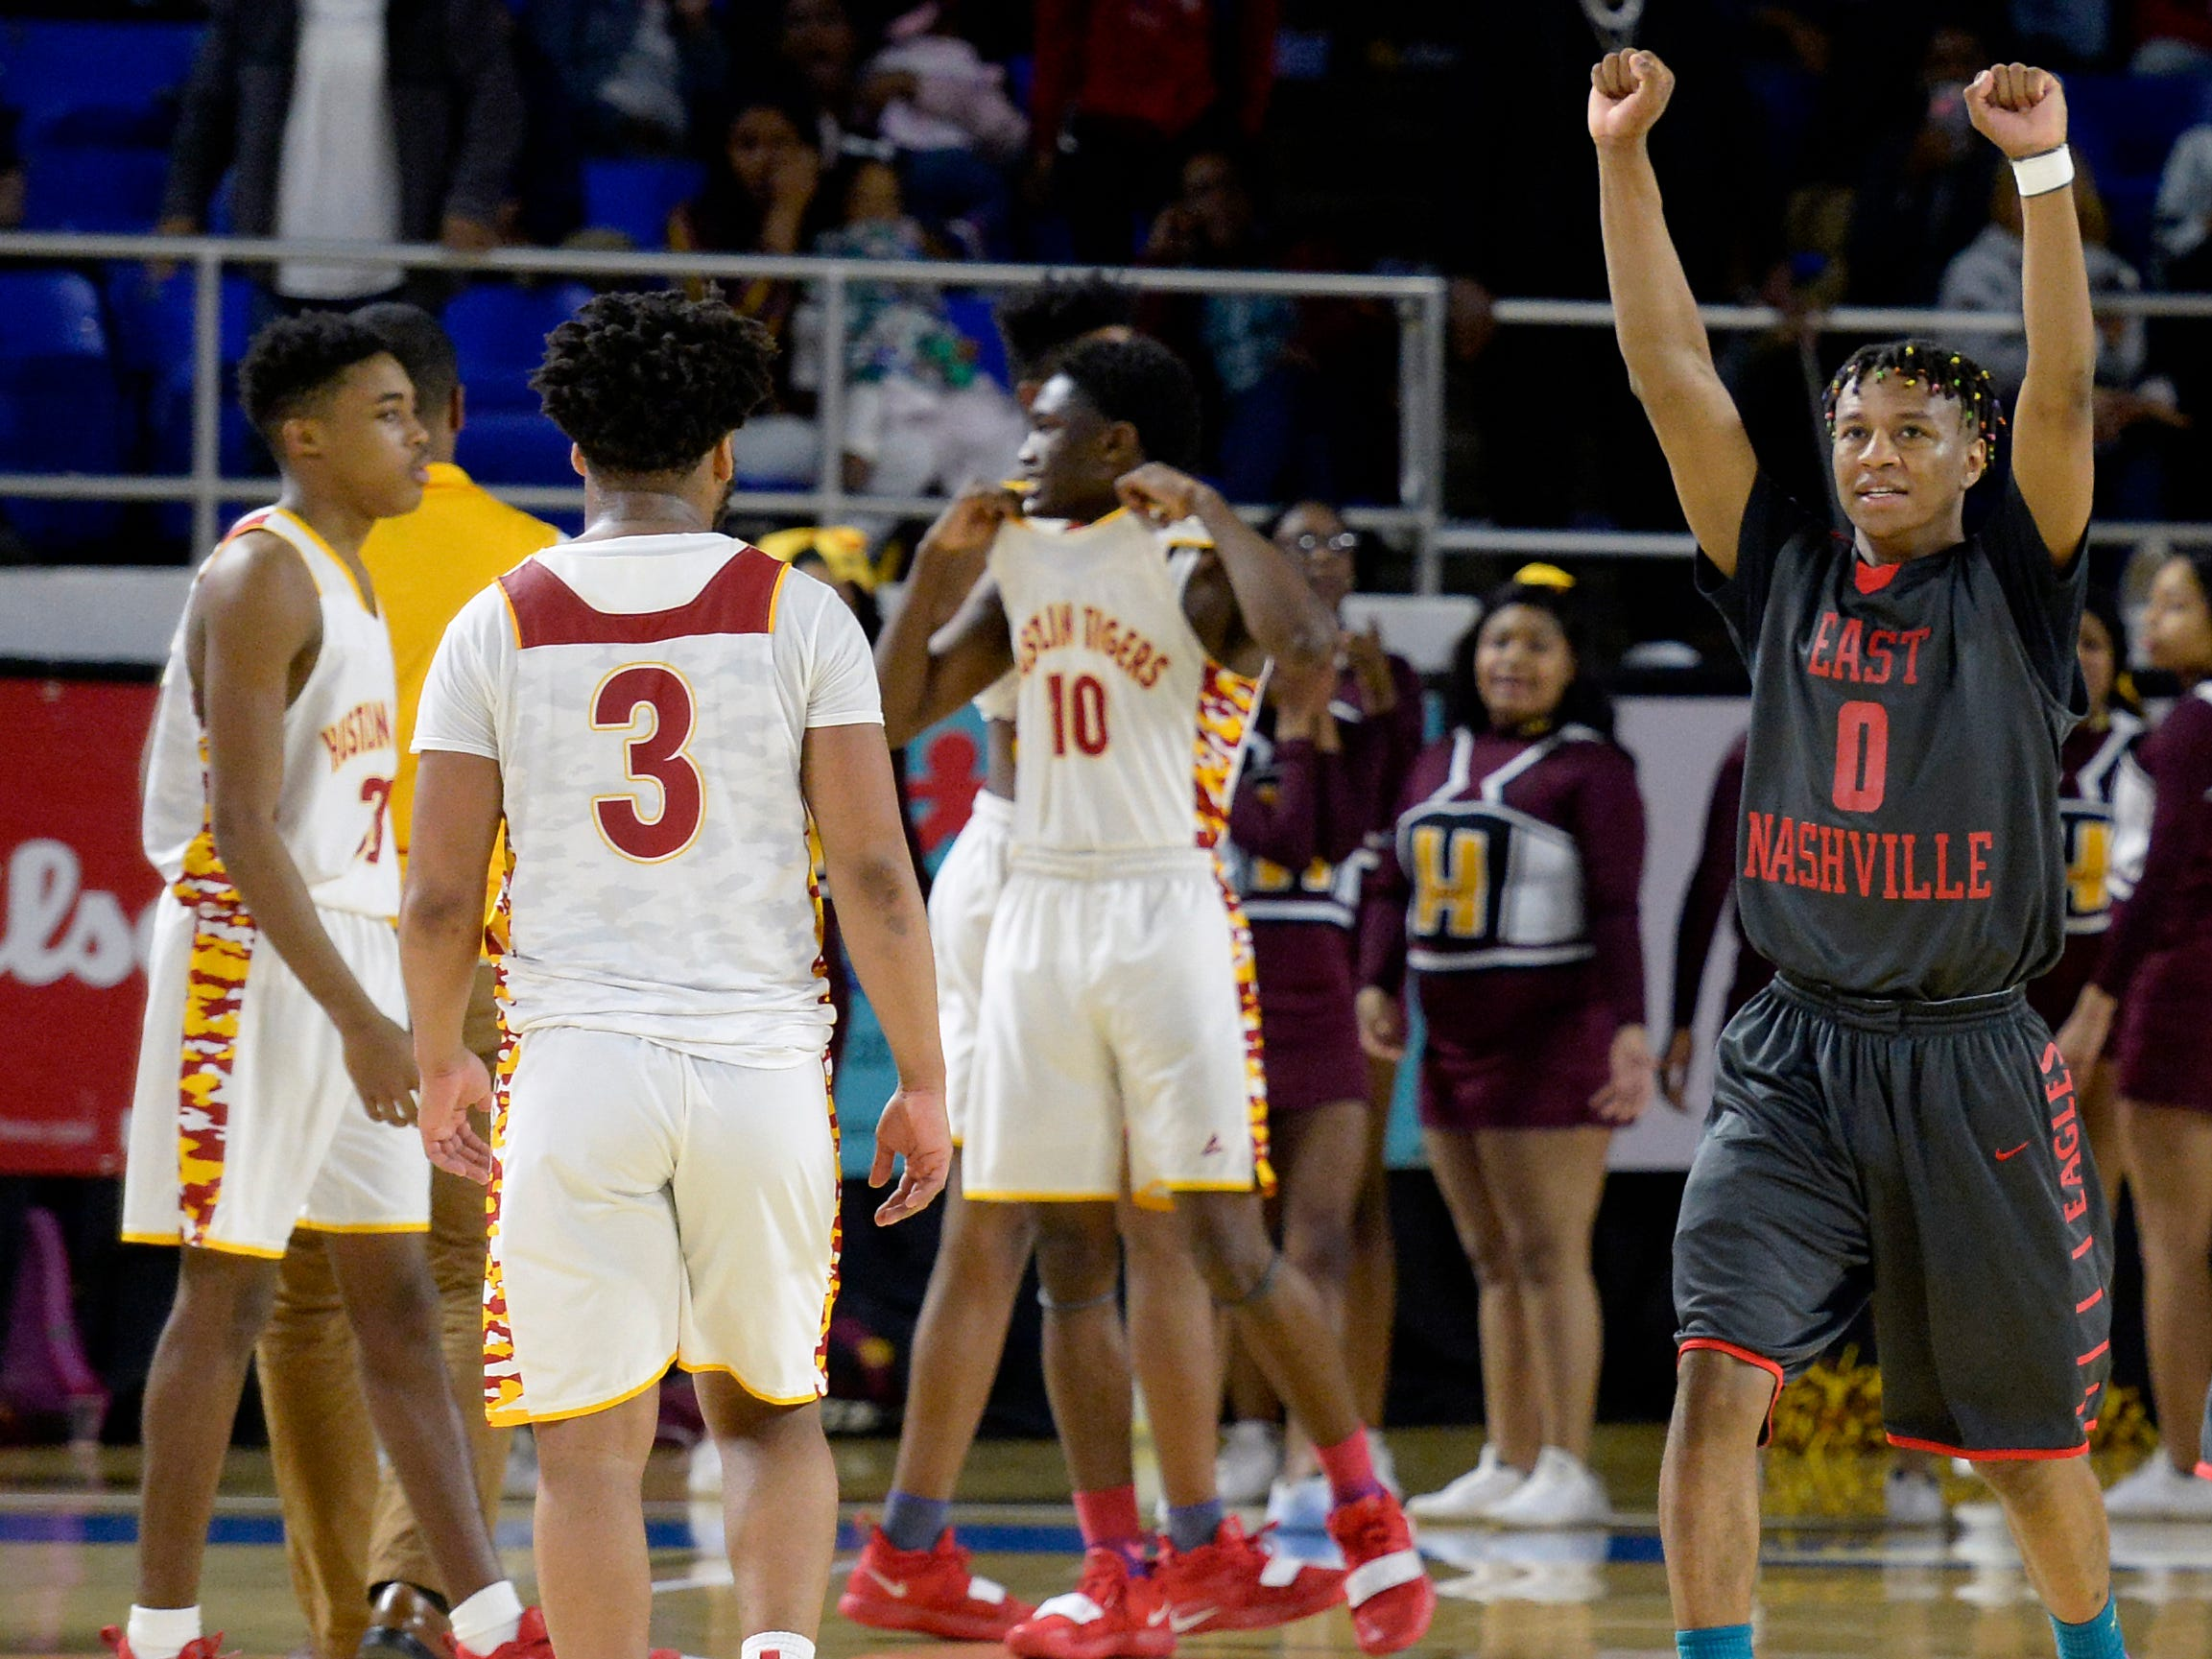 East Nashville guard Taras Carter (0) celebrates after the team's 78-75 win against Howard in an Class AA boys' state basketball quarterfinal game Wednesday, March 13, 2019, in Murfreesboro, Tenn.